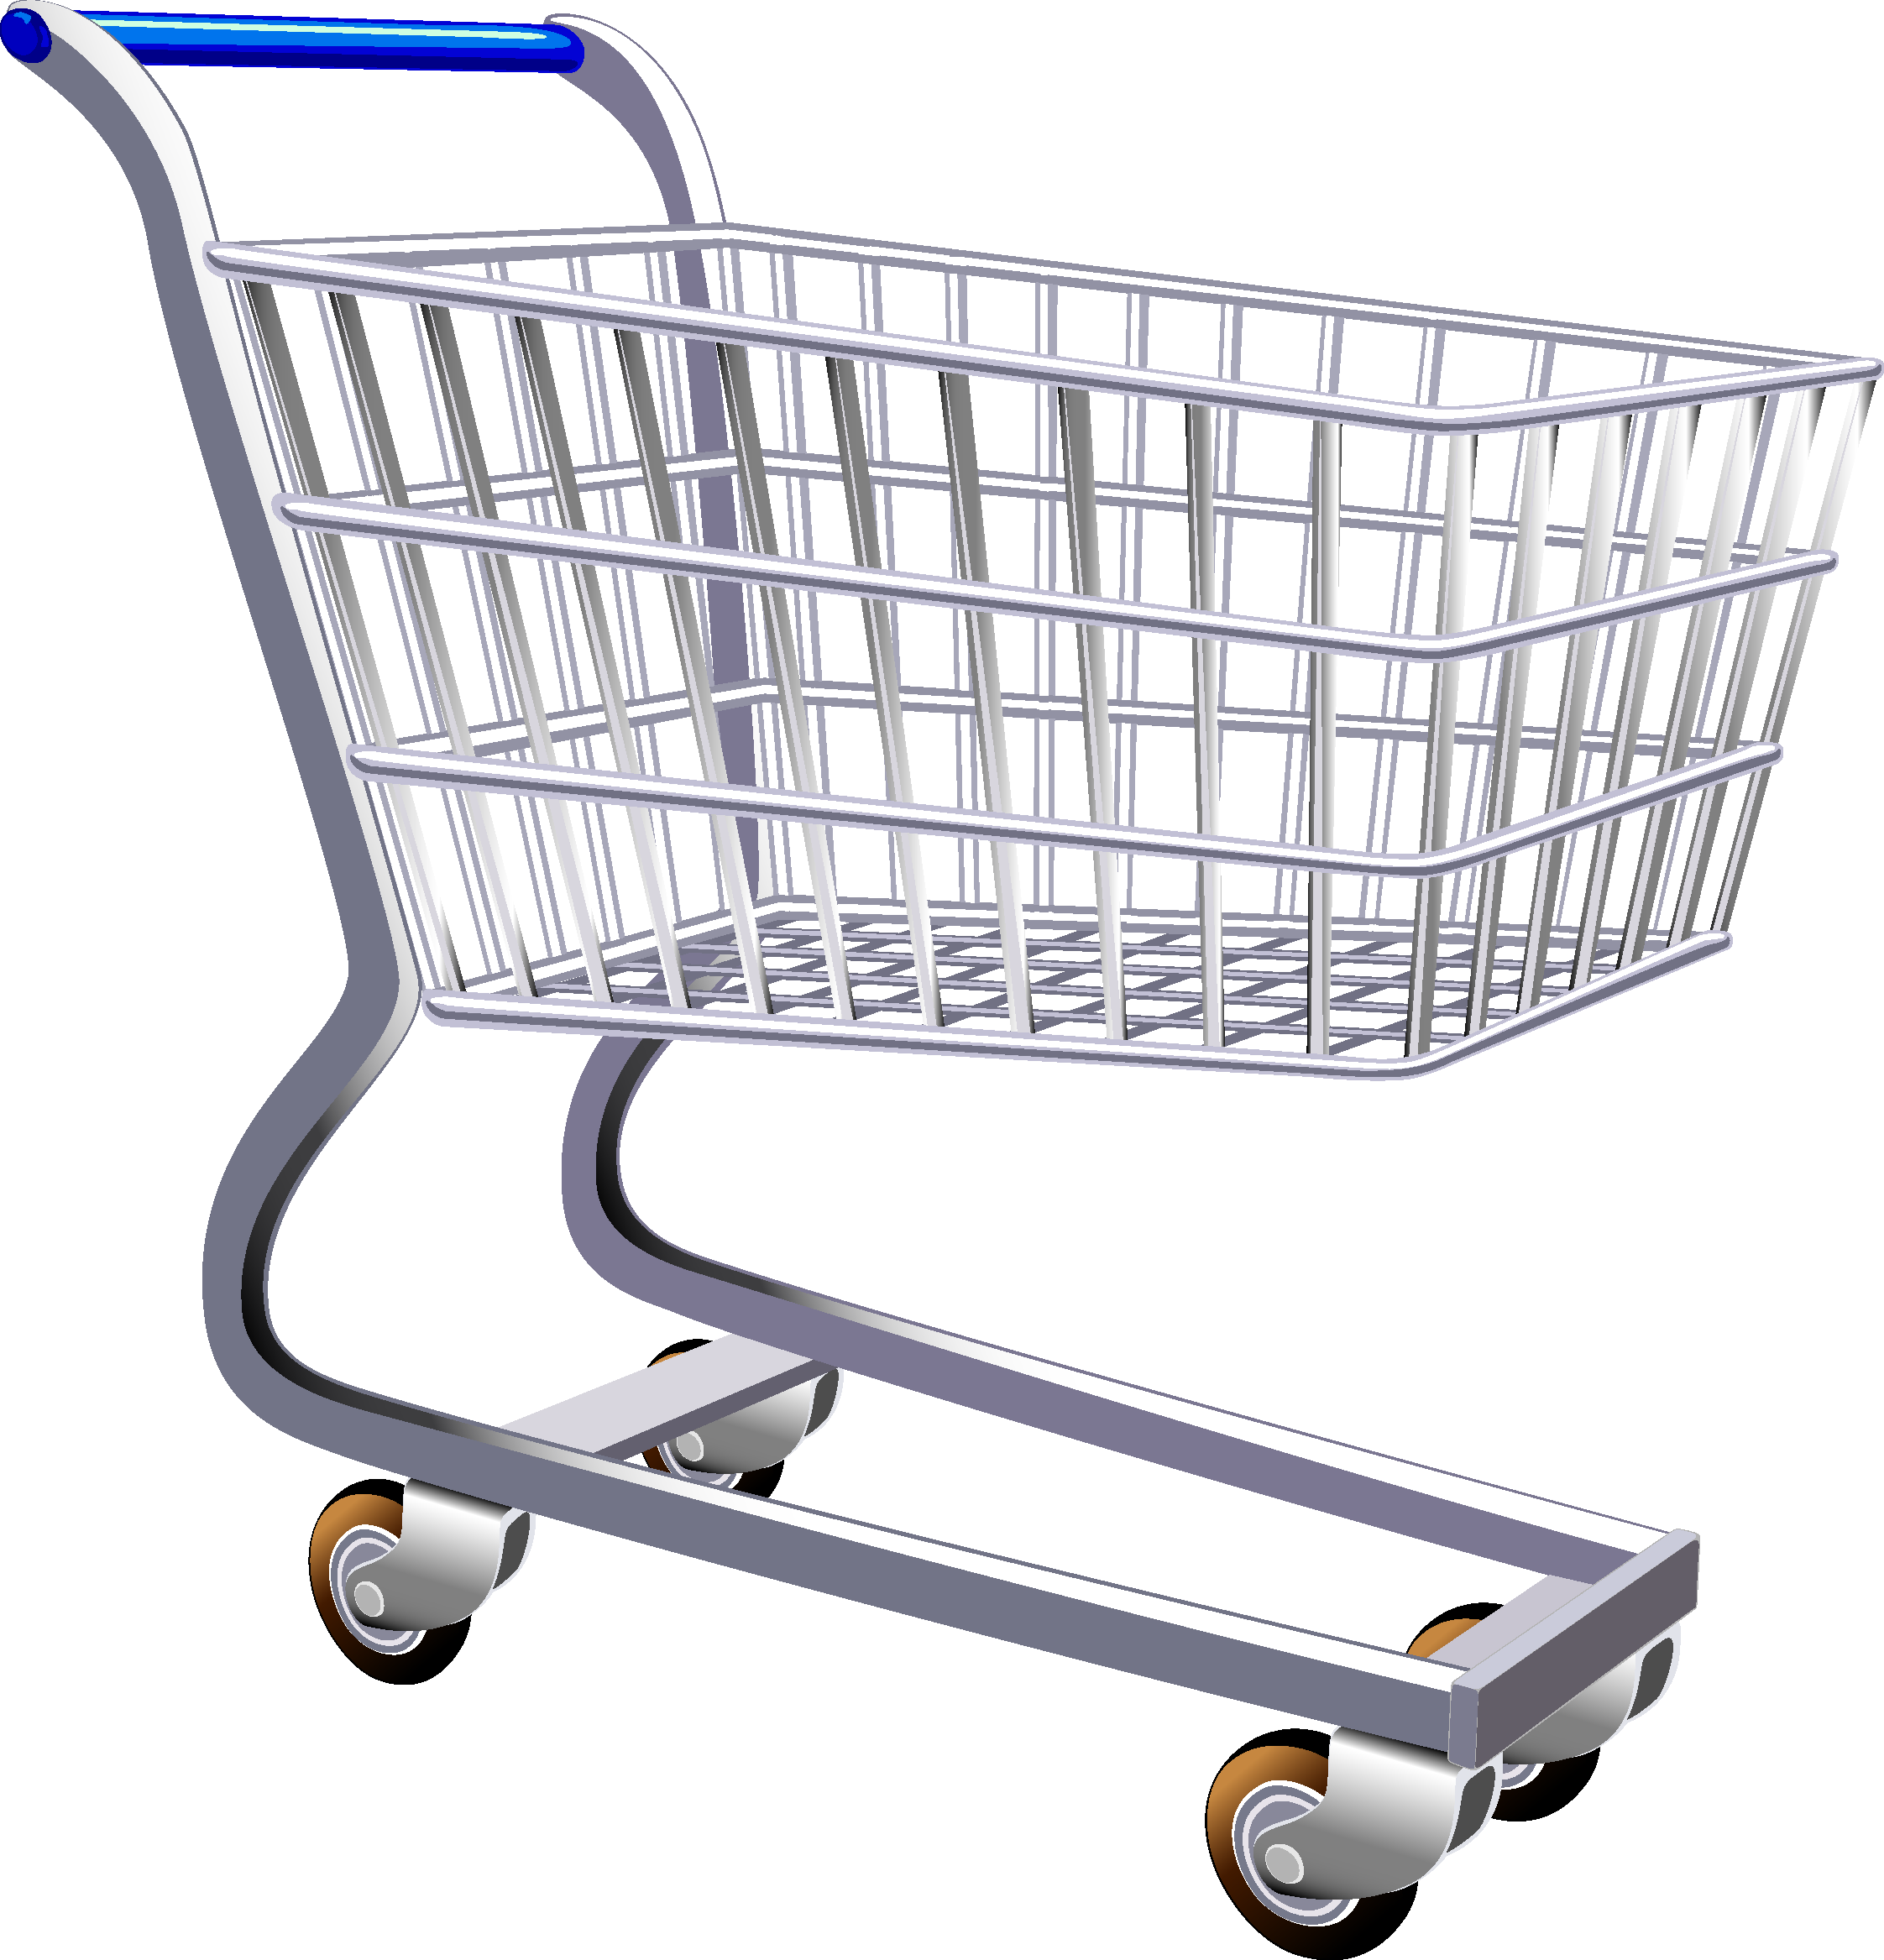 banner library Shopping cart clip art. Supermarket clipart trolley